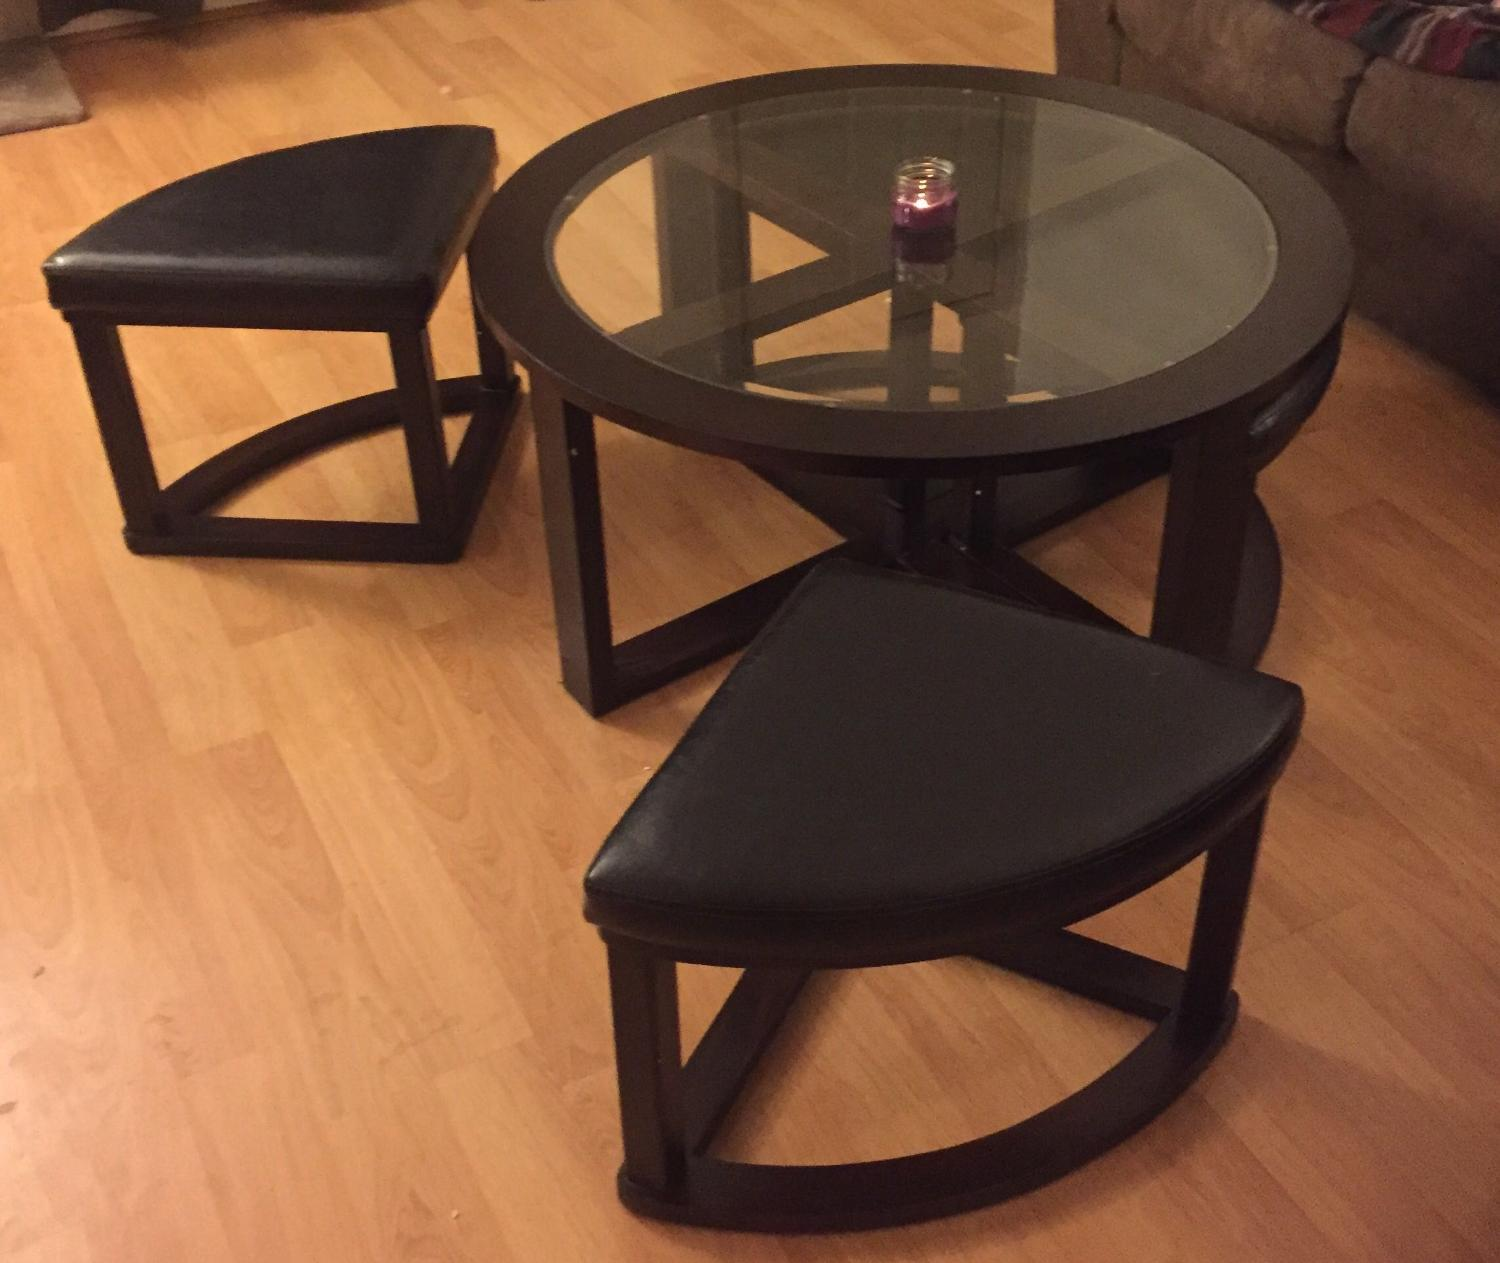 find more versatile round coffee table with seats for sale at up to 90 off regina sk. Black Bedroom Furniture Sets. Home Design Ideas